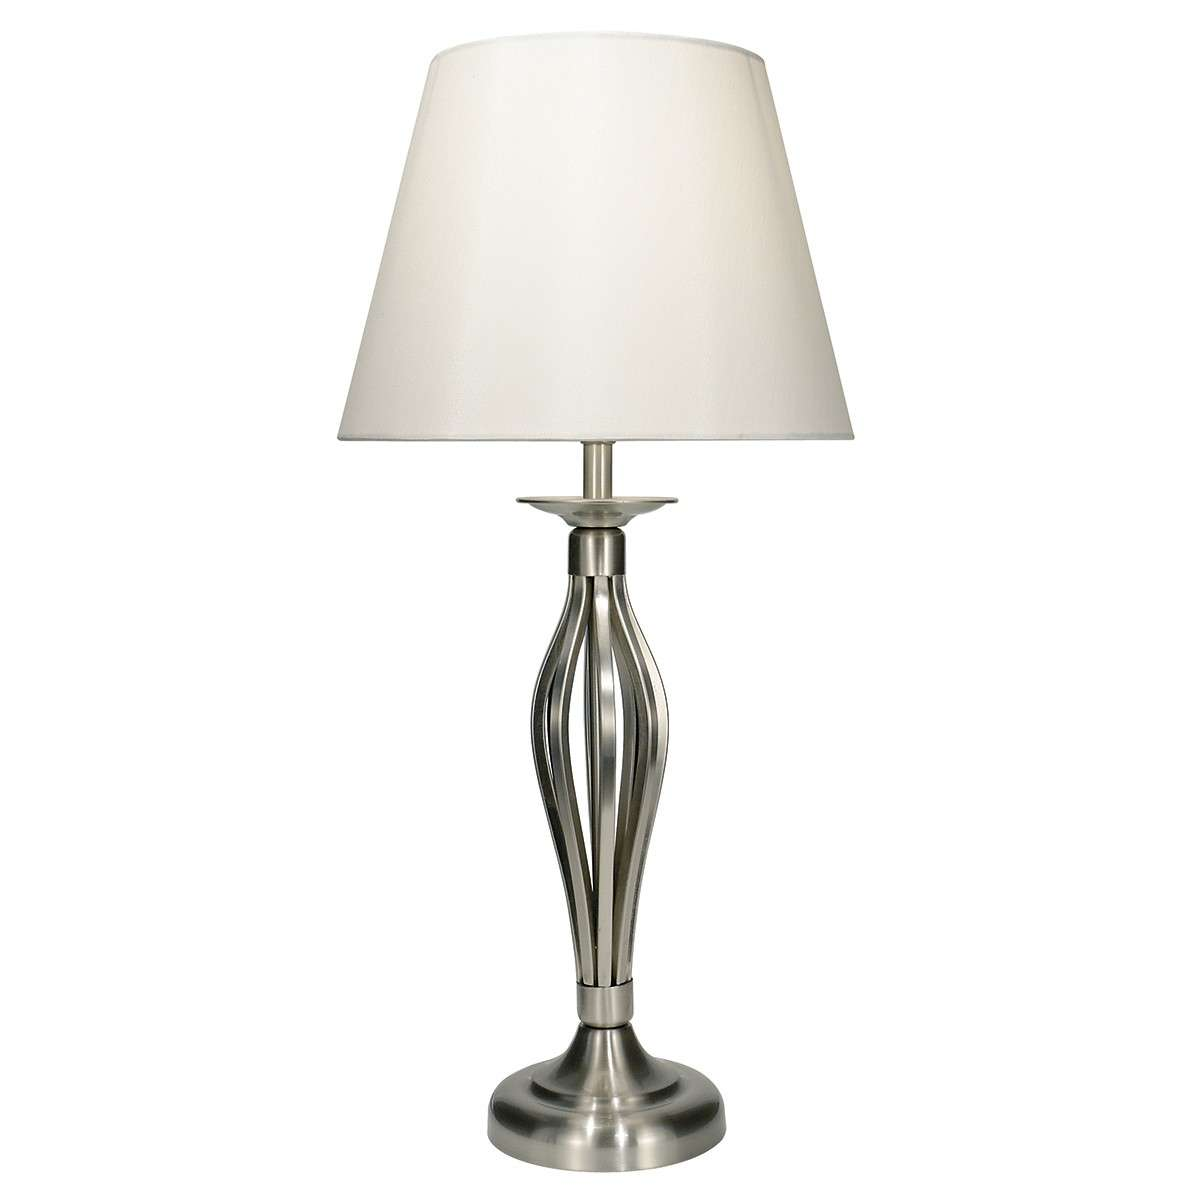 Bybliss Table Lamp Satin Chrome